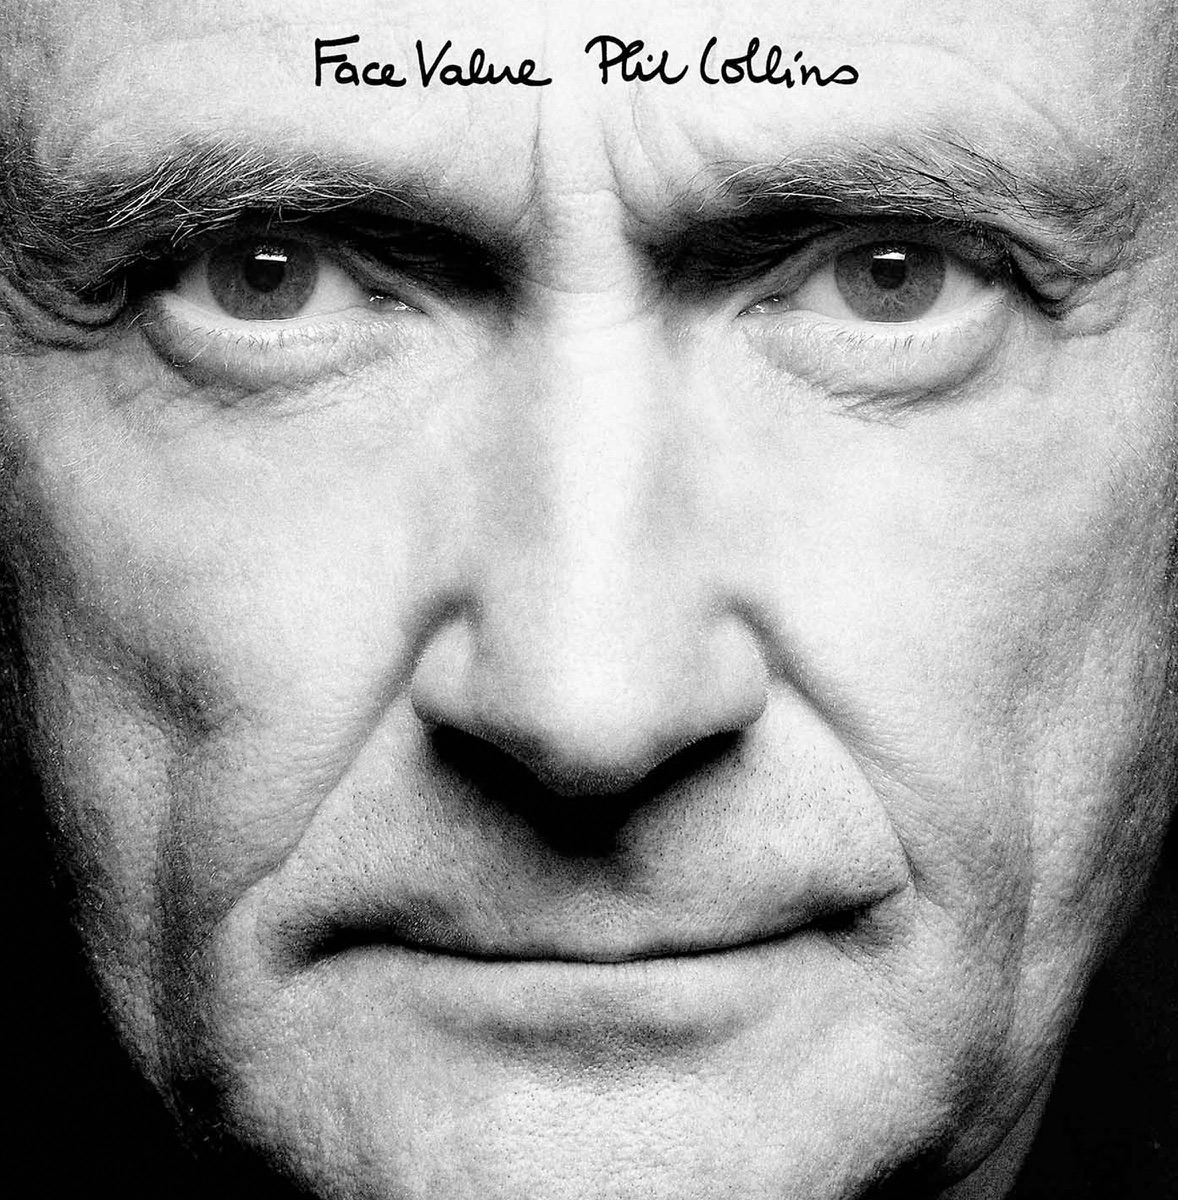 Face Value Deluxe Edition Phil Collins CD cover